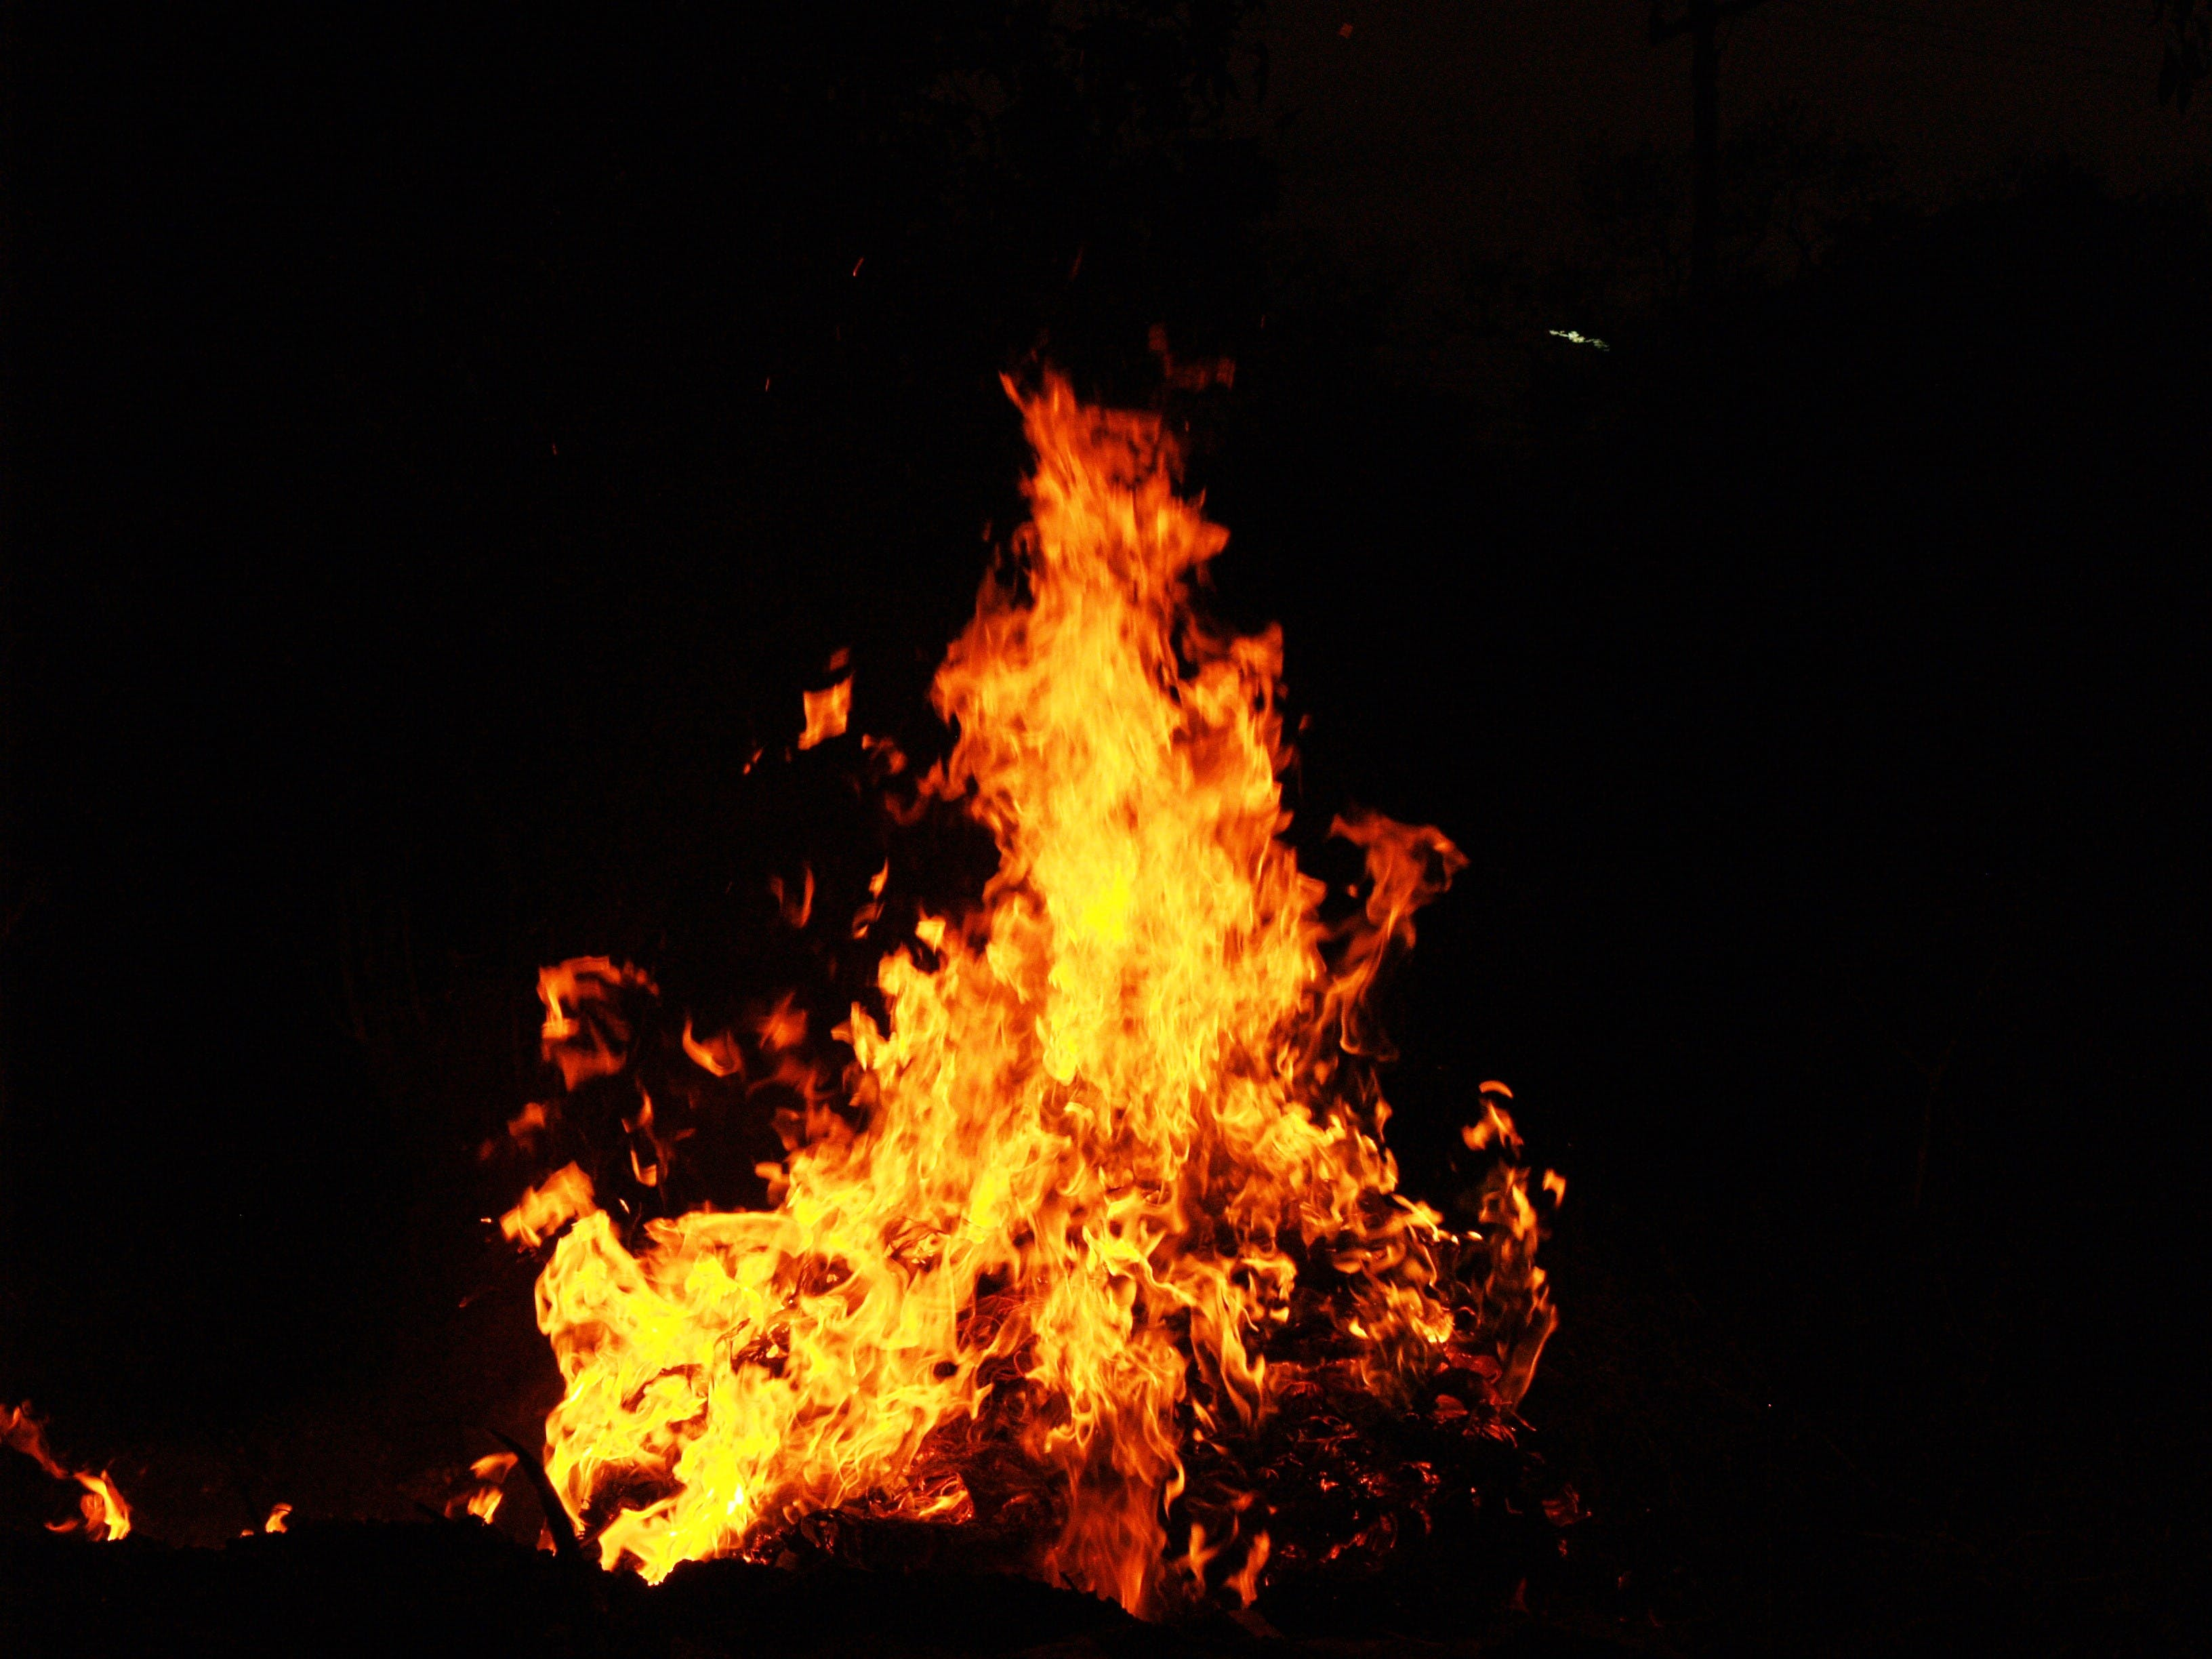 View of Fire during Night